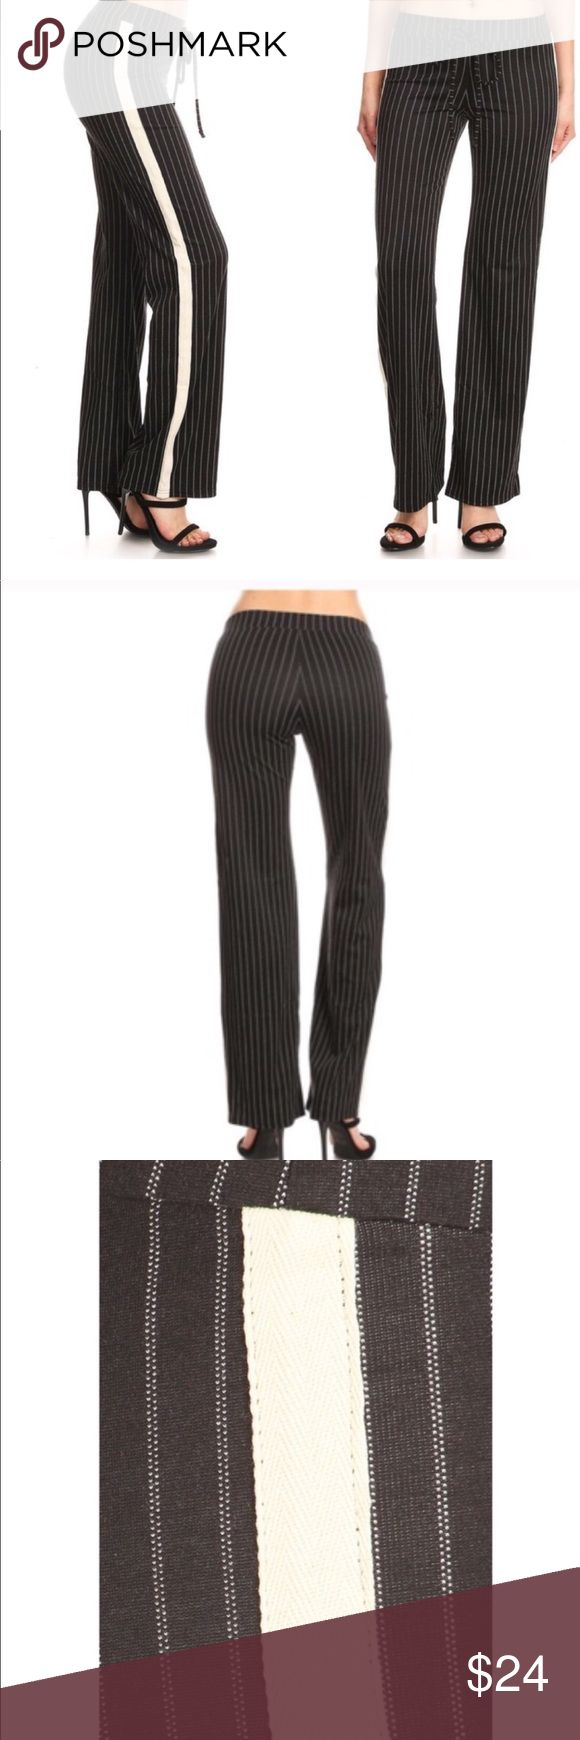 New Item Just In!!!! Stylish Linen Pants Black Linen Pants with a Cream Colored Stripes and a Wide Panel in Cream Color on The Side   They have an Elastic Waist and the legs flare for a sophisticated style Pants Wide Leg